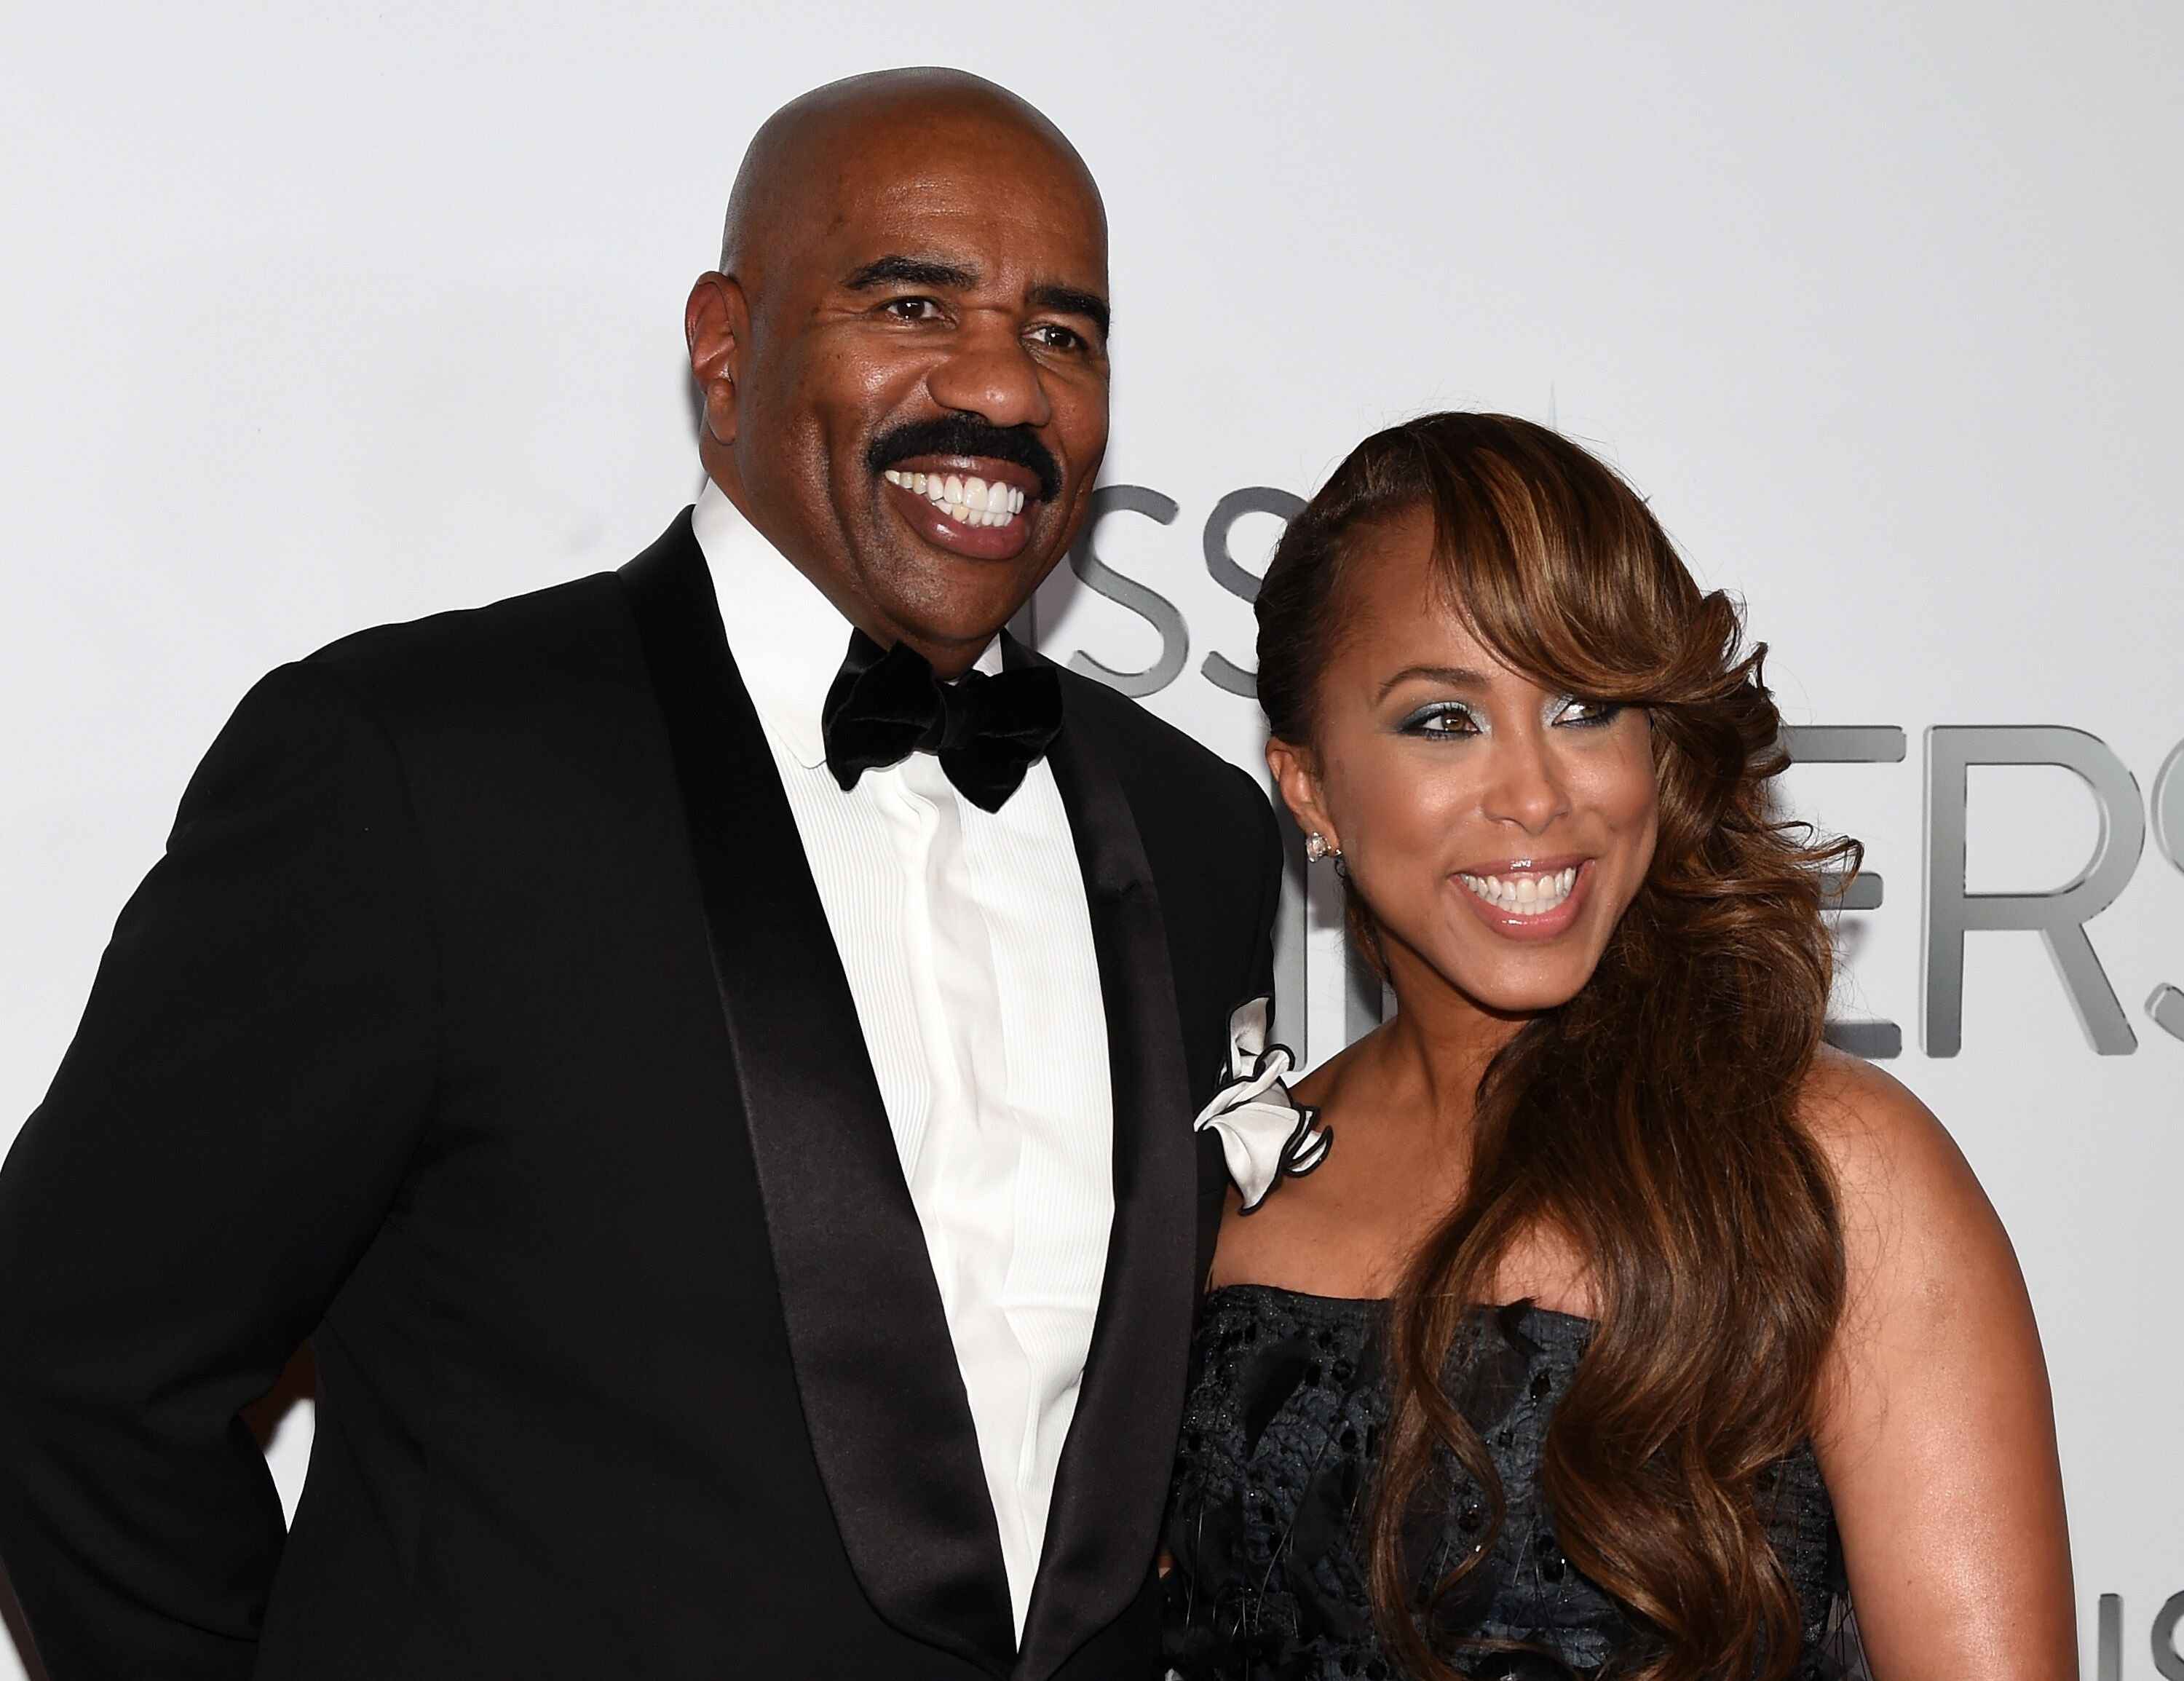 Steve Harvey and his wife Marjorie Harvey attend the 2015 Miss Universe Pageant at Planet Hollywood Resort & Casino on December 20, 2015 in Las Vegas, Nevada | Photo: Getty Images